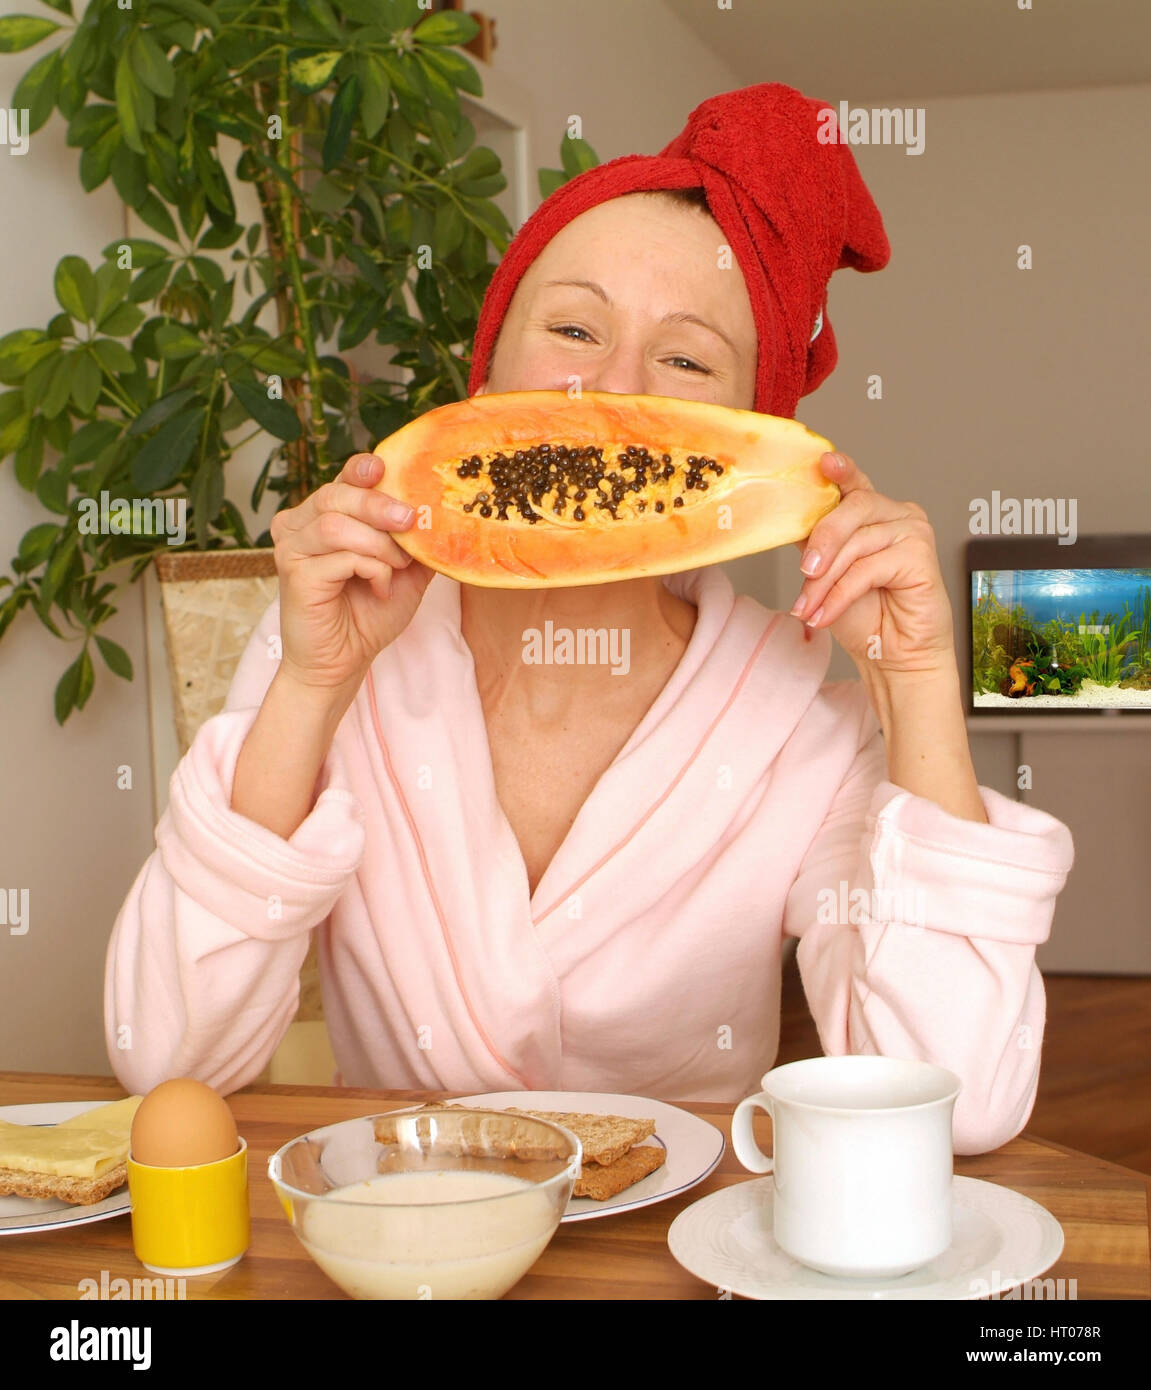 Junge Frau im Morgenmantel beim gesunden Fruehstueck - young woman at substantial breakfast - Stock Image